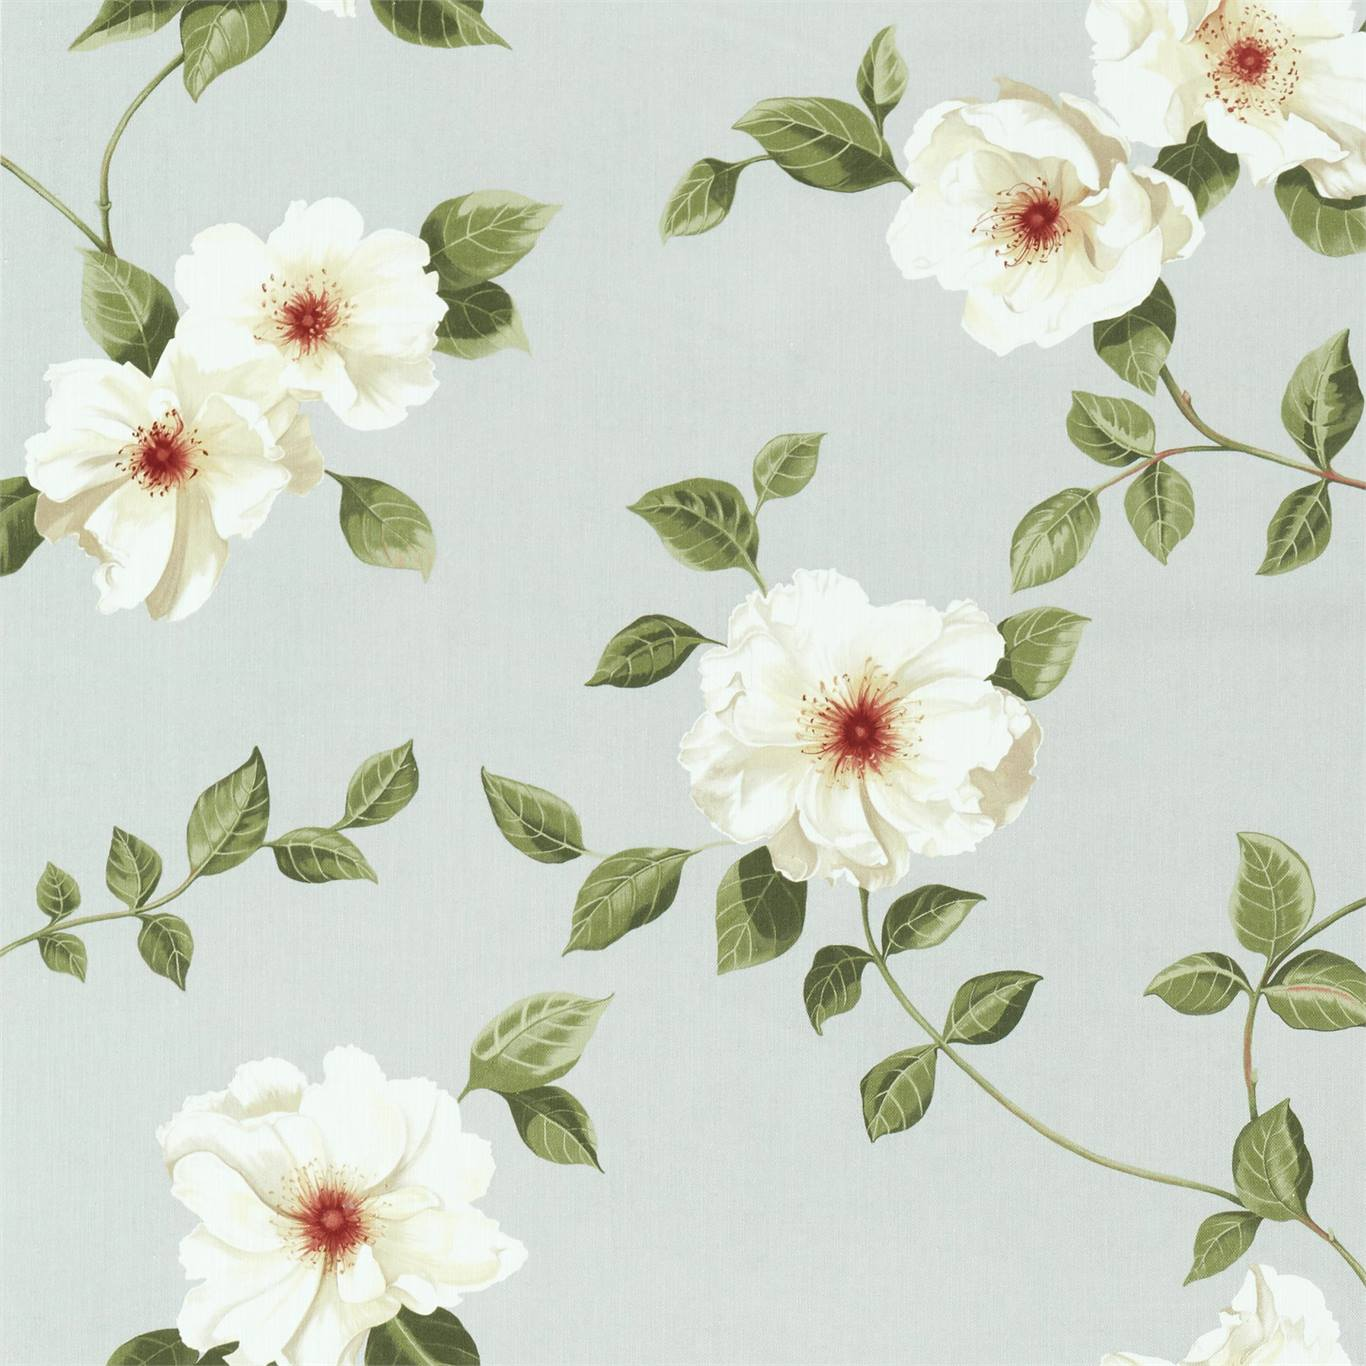 DNTF226737 Collection - National Trust Fabric